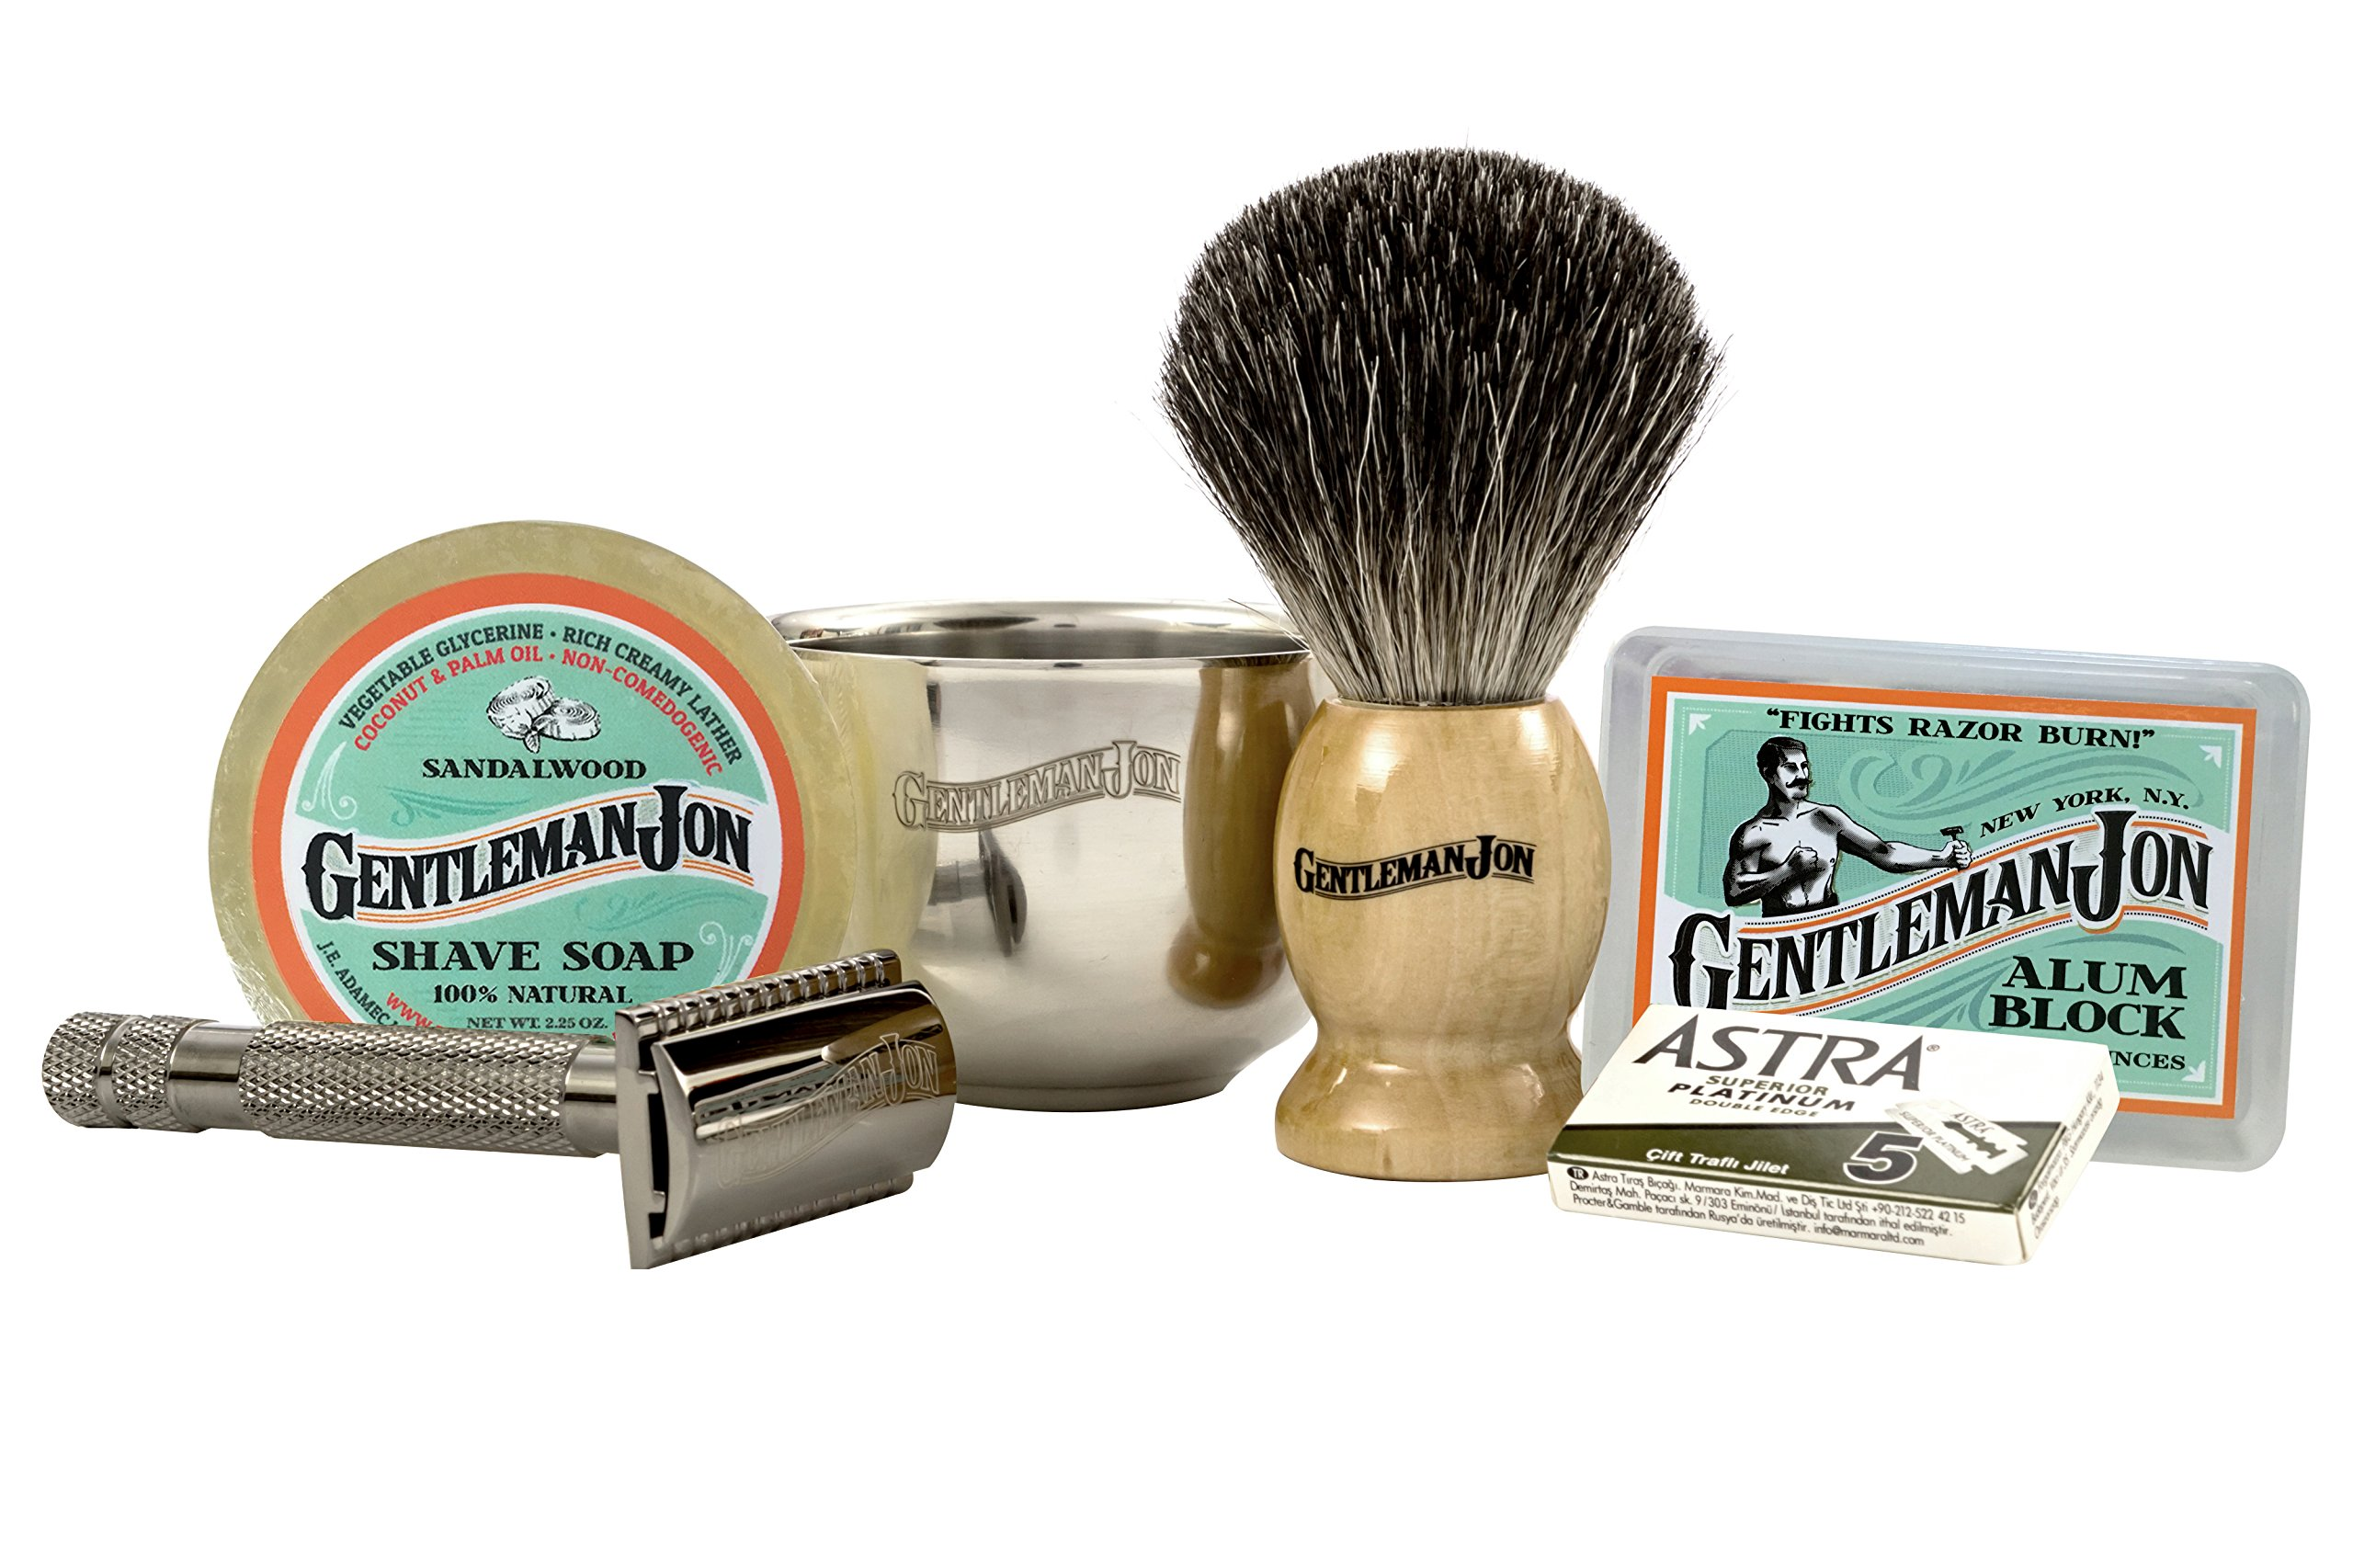 Gentleman Jon Complete Wet Shave Kit | Includes 6 Items: One Safety Razor, One Badger Hair Brush, One Alum Block, One Shave Soap, One Stainless Steel Bowl and Five Razor Blades by Gentleman Jon (Image #2)